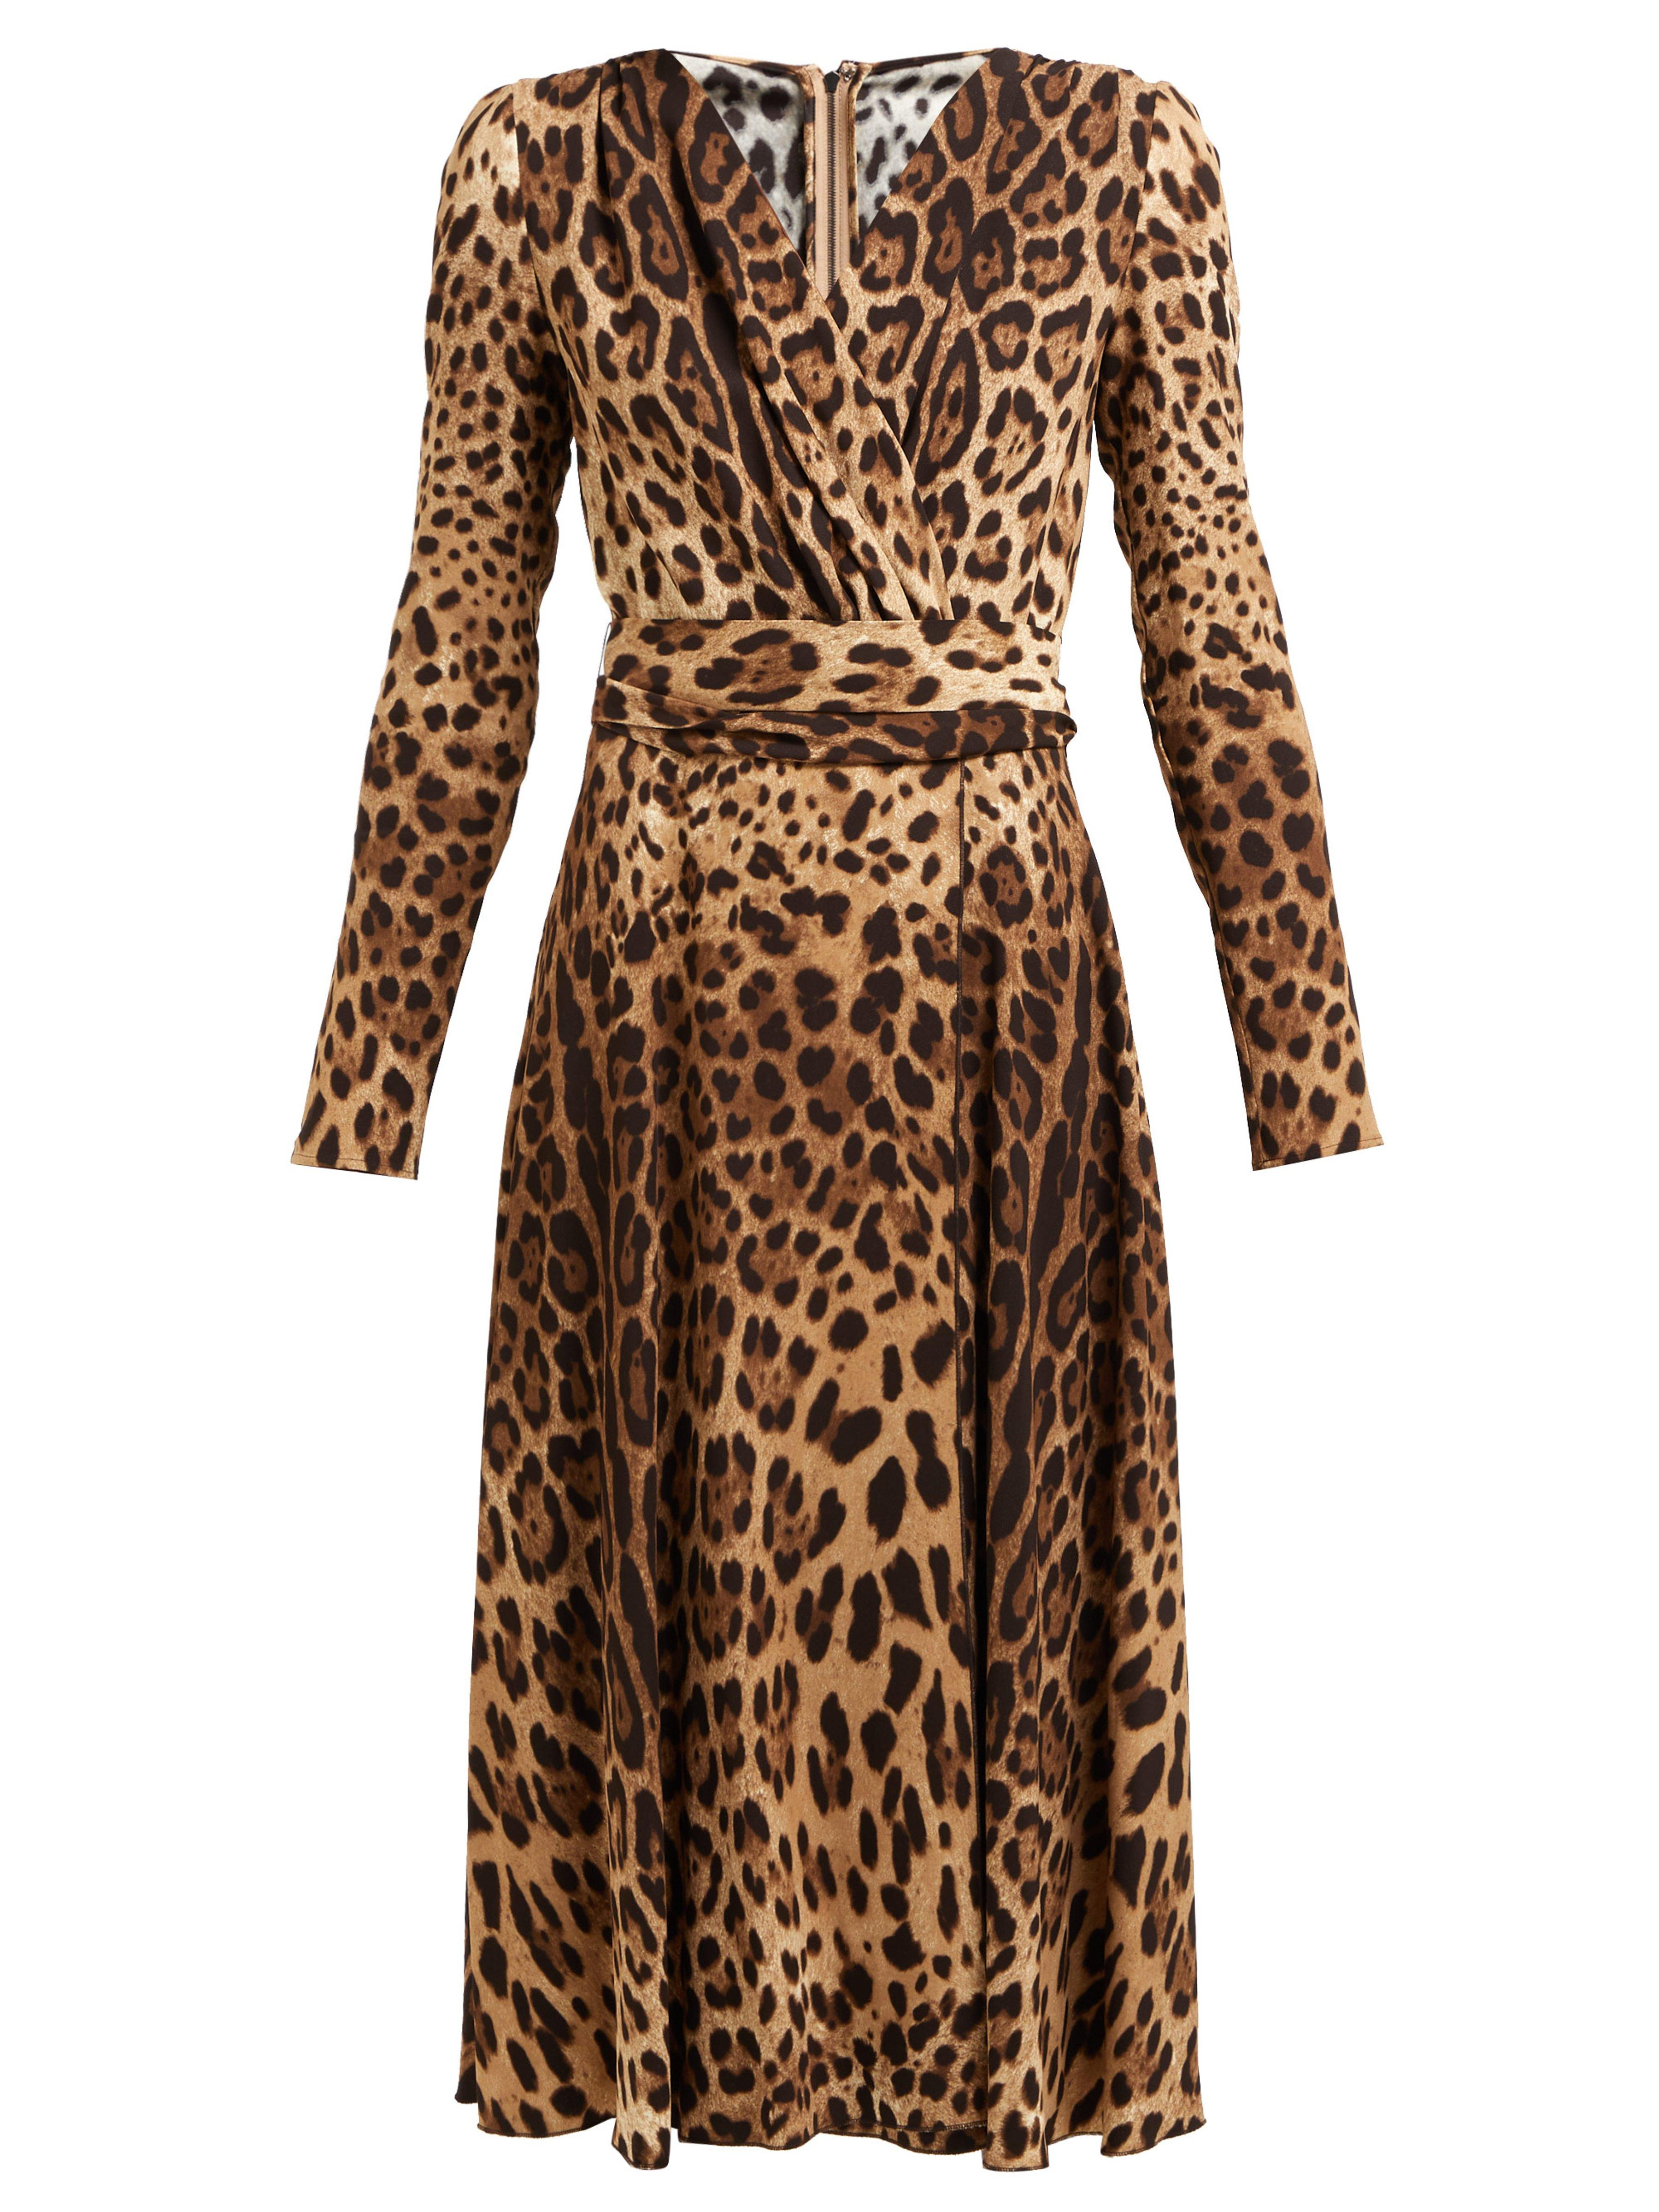 Dolce   Gabbana Leopard Print Belted Dress in Brown - Lyst e57035f28